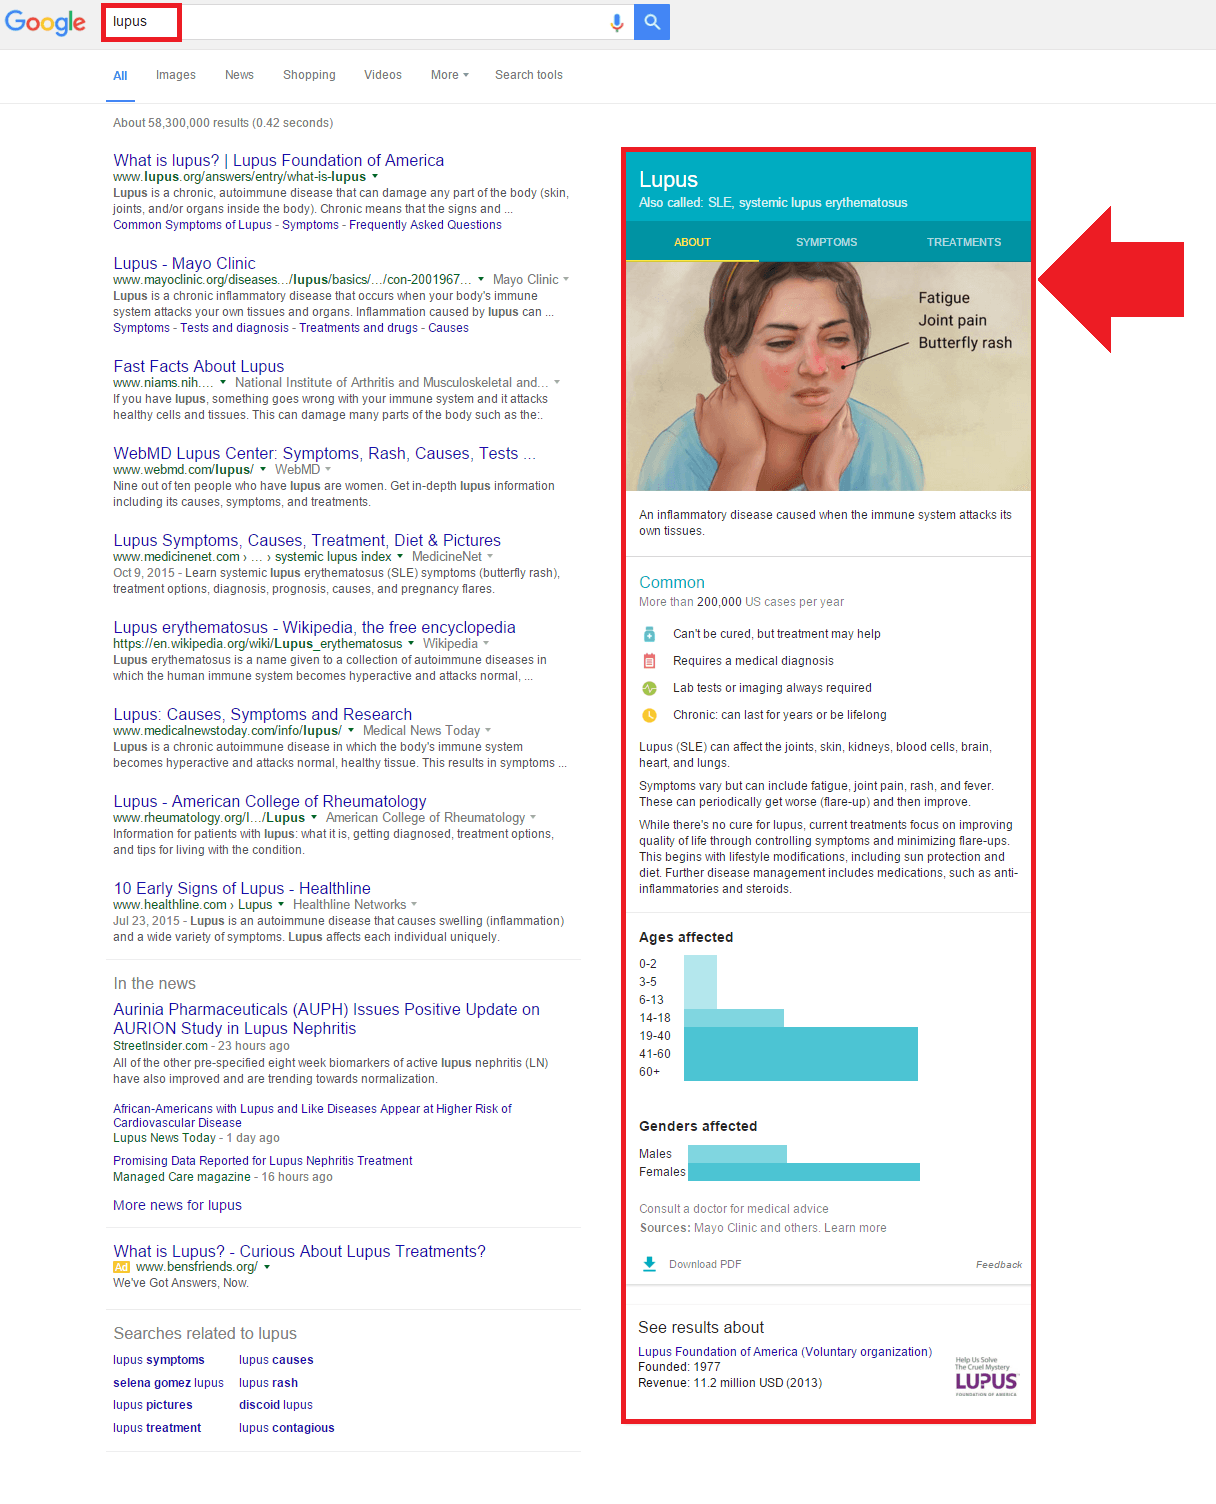 Exemple de Google May Treat dans le Knowledge Graph sur la requête Lupus